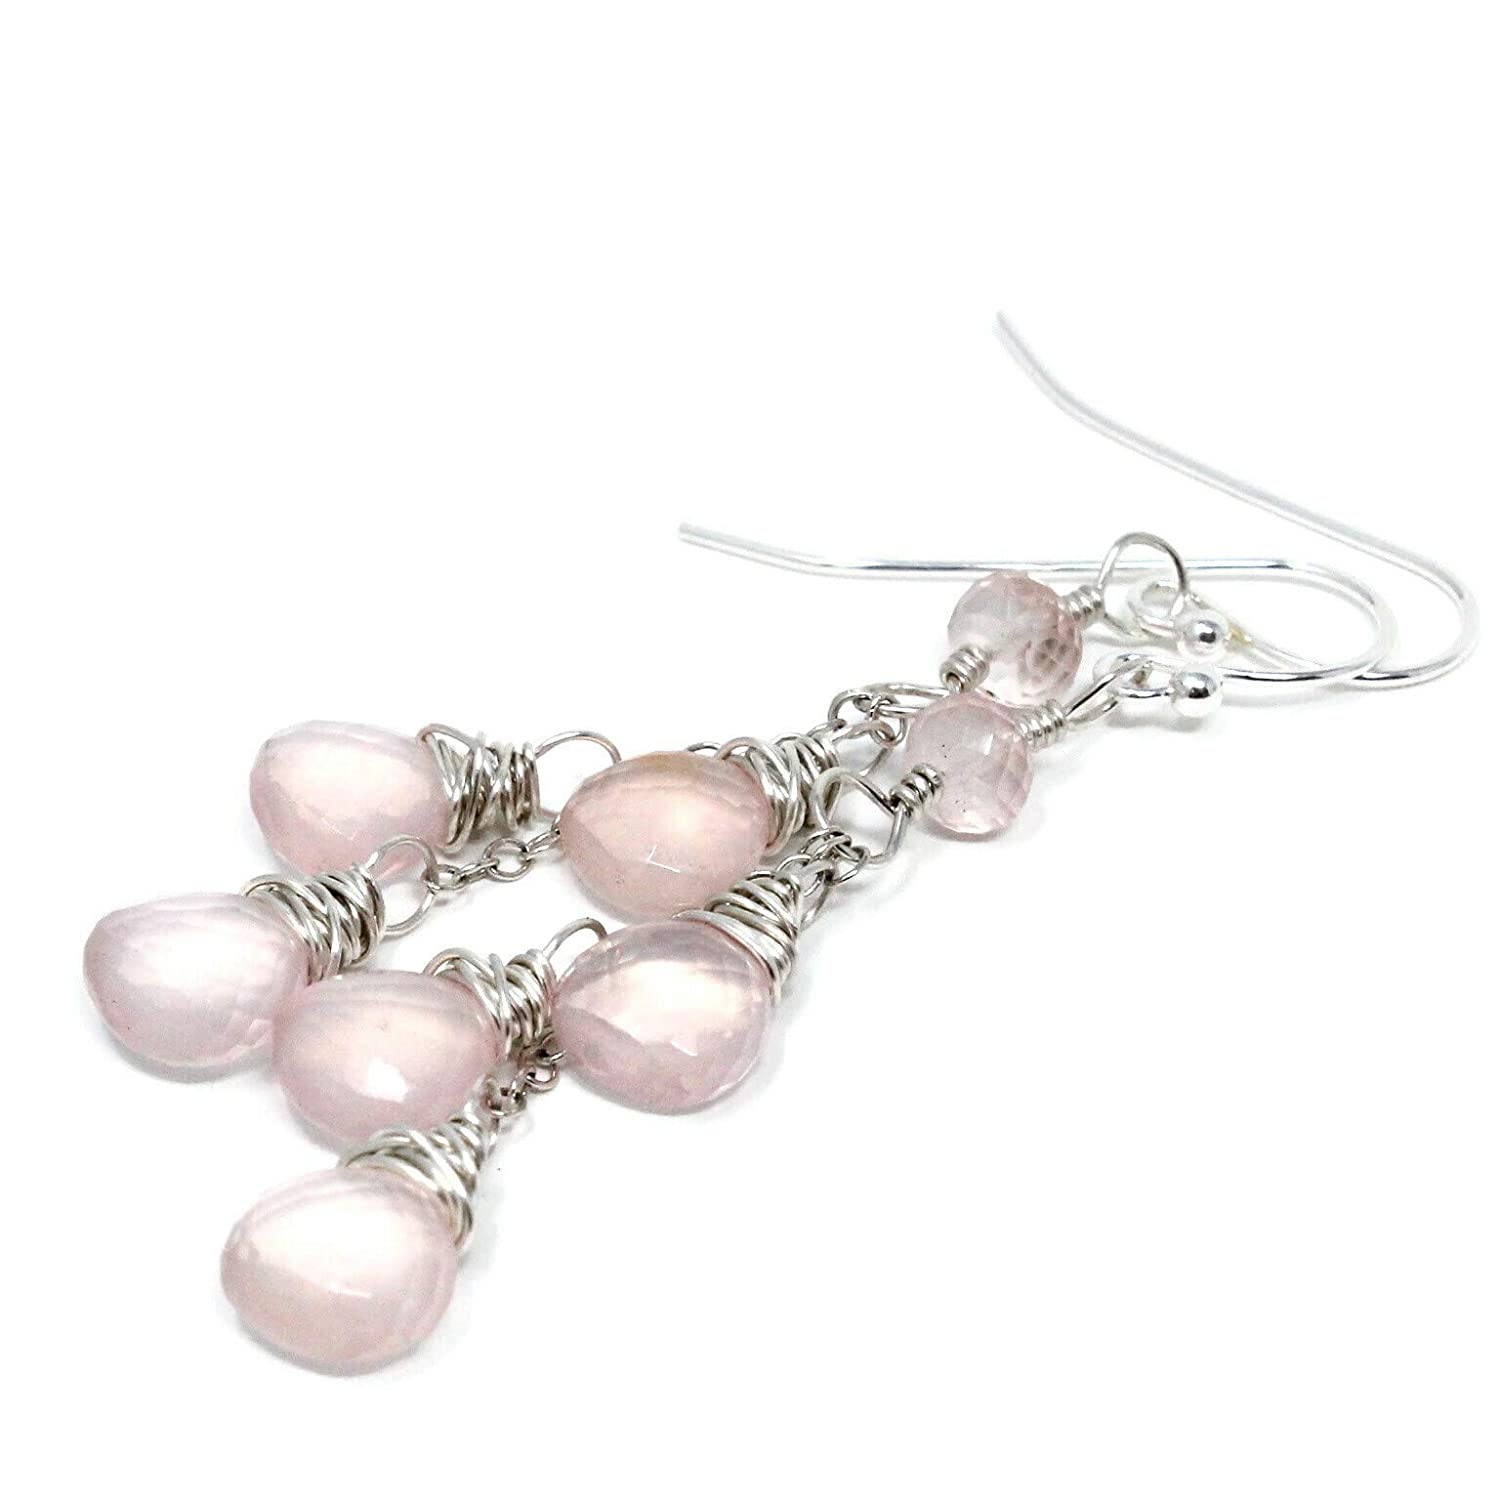 Rose Sales of SALE items from new works Quartz ! Super beauty product restock quality top! Earrings Dangle Pale Pink Briolettes Sterl Waterfall